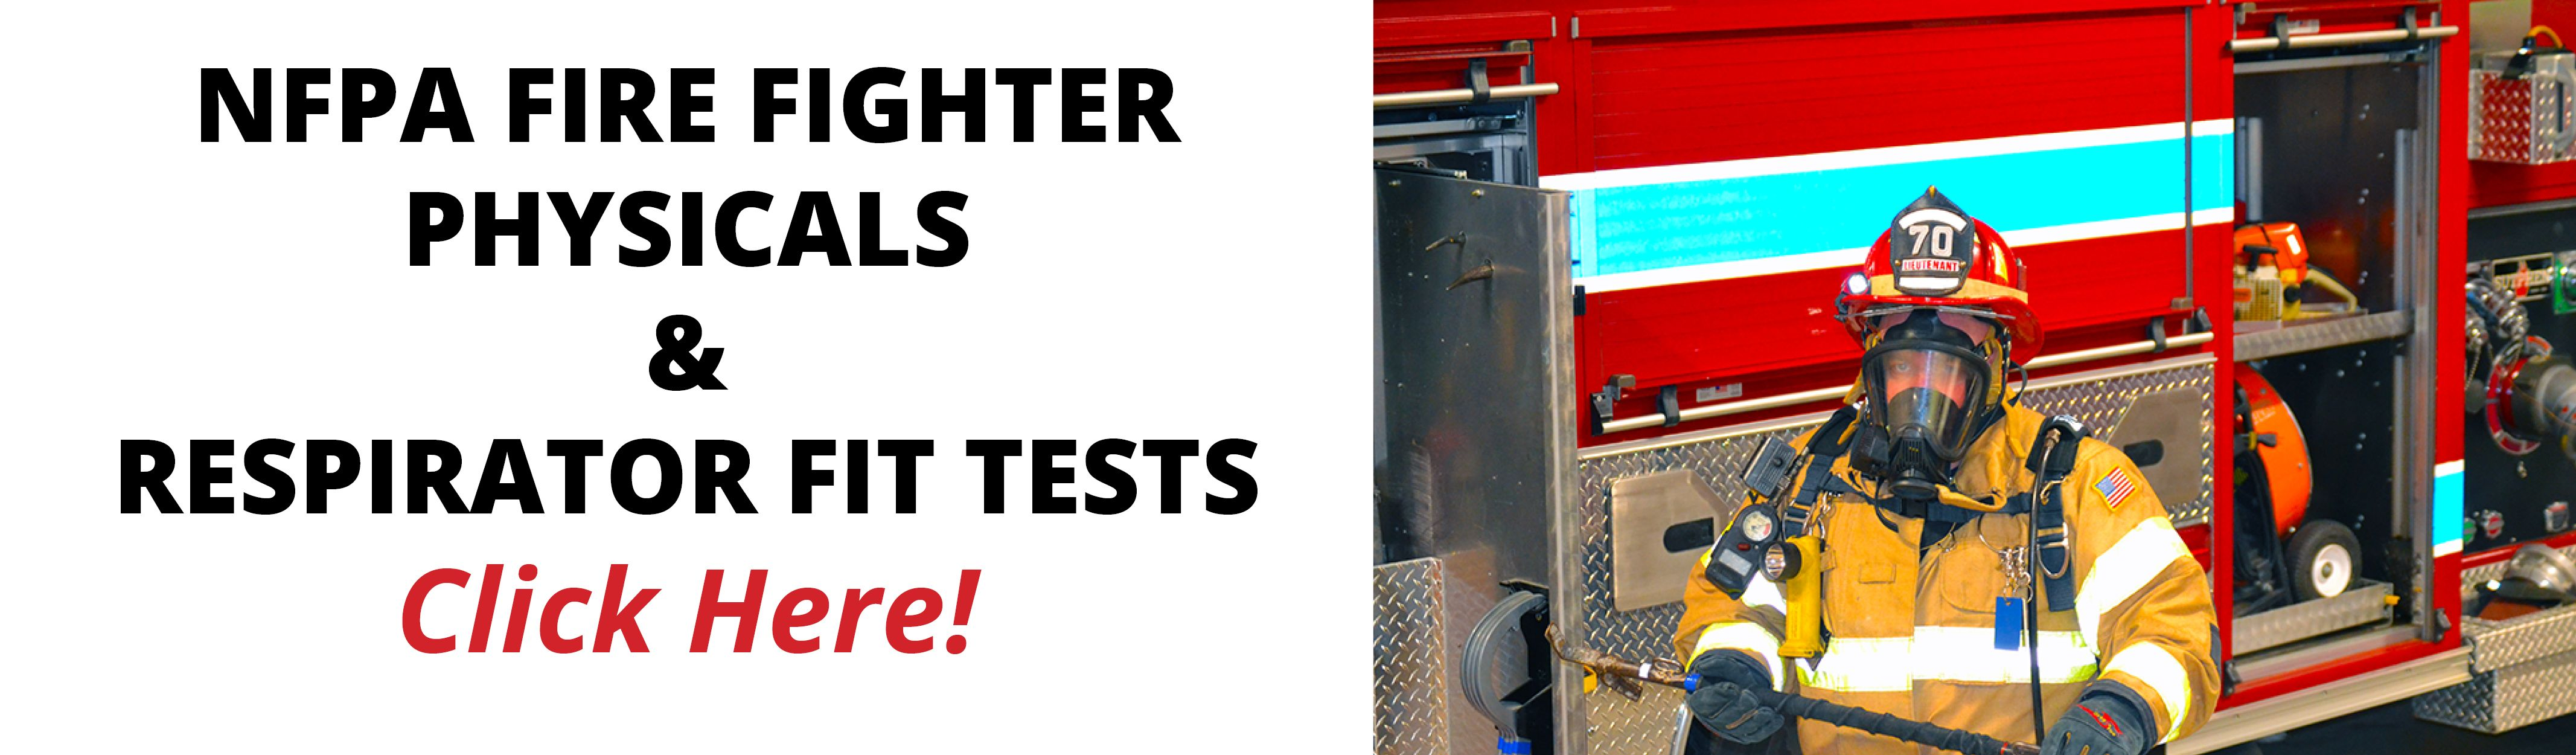 Breaking Down NFPA 1582 Requirements - Worksite Medical®